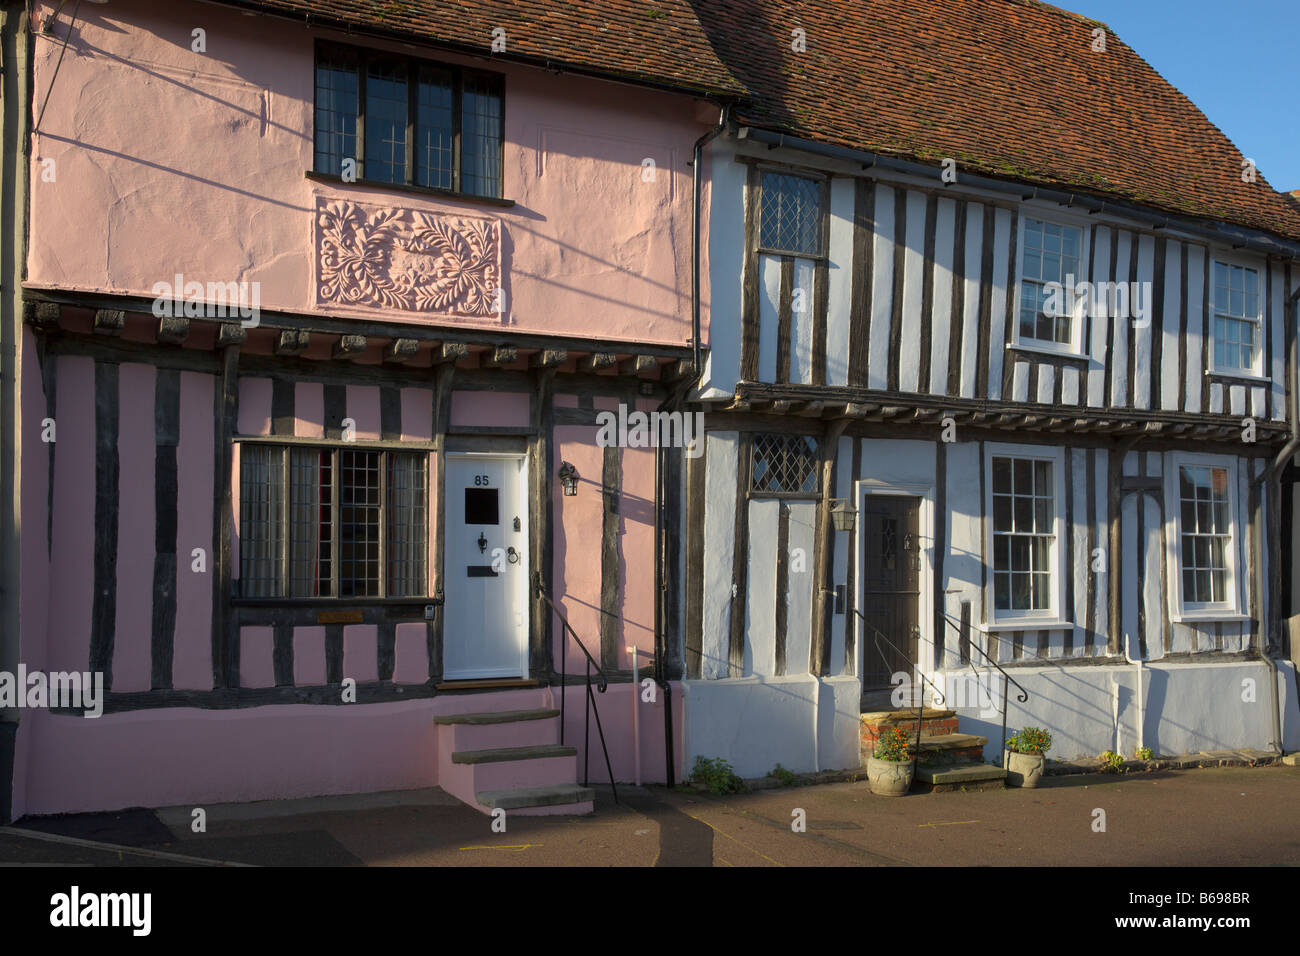 Houses in Lavenham - Stock Image